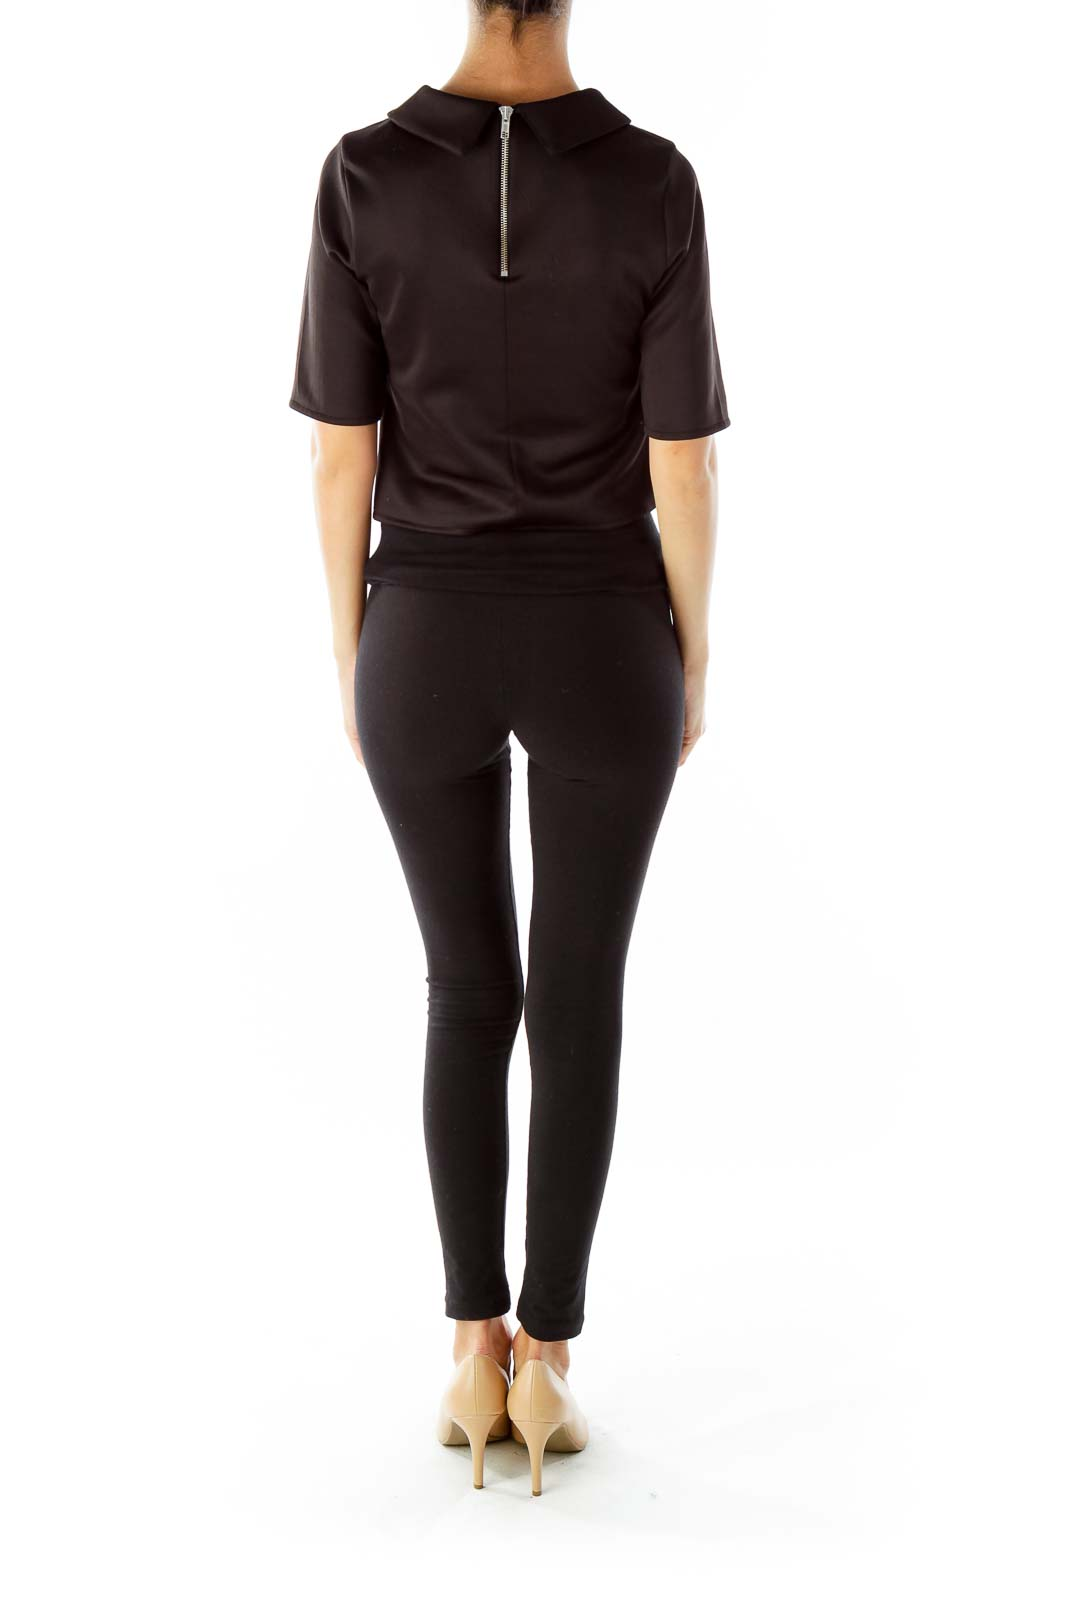 Black Three-Quarter-Sleeve Top